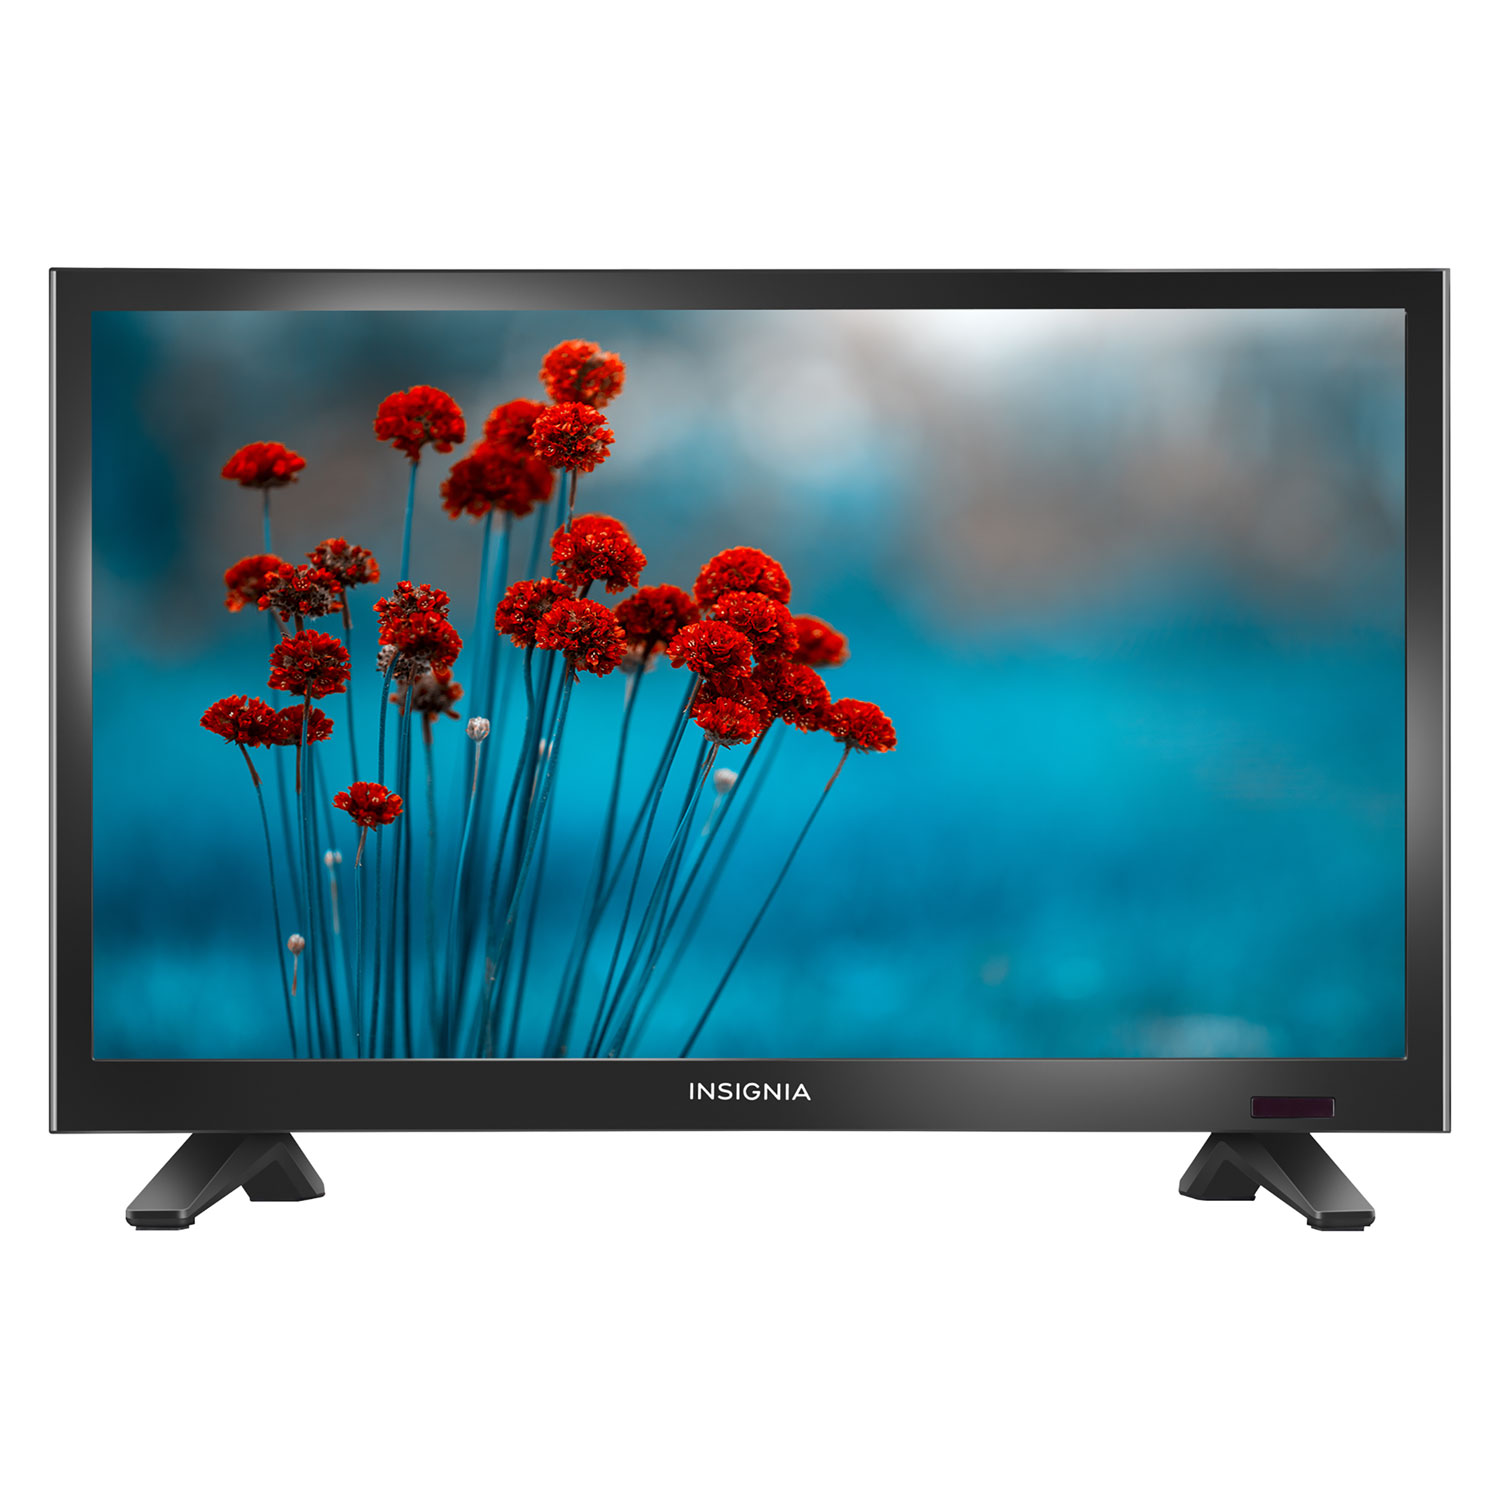 insignia 19 720p led hdtv ns 19d220na16 a ebay. Black Bedroom Furniture Sets. Home Design Ideas